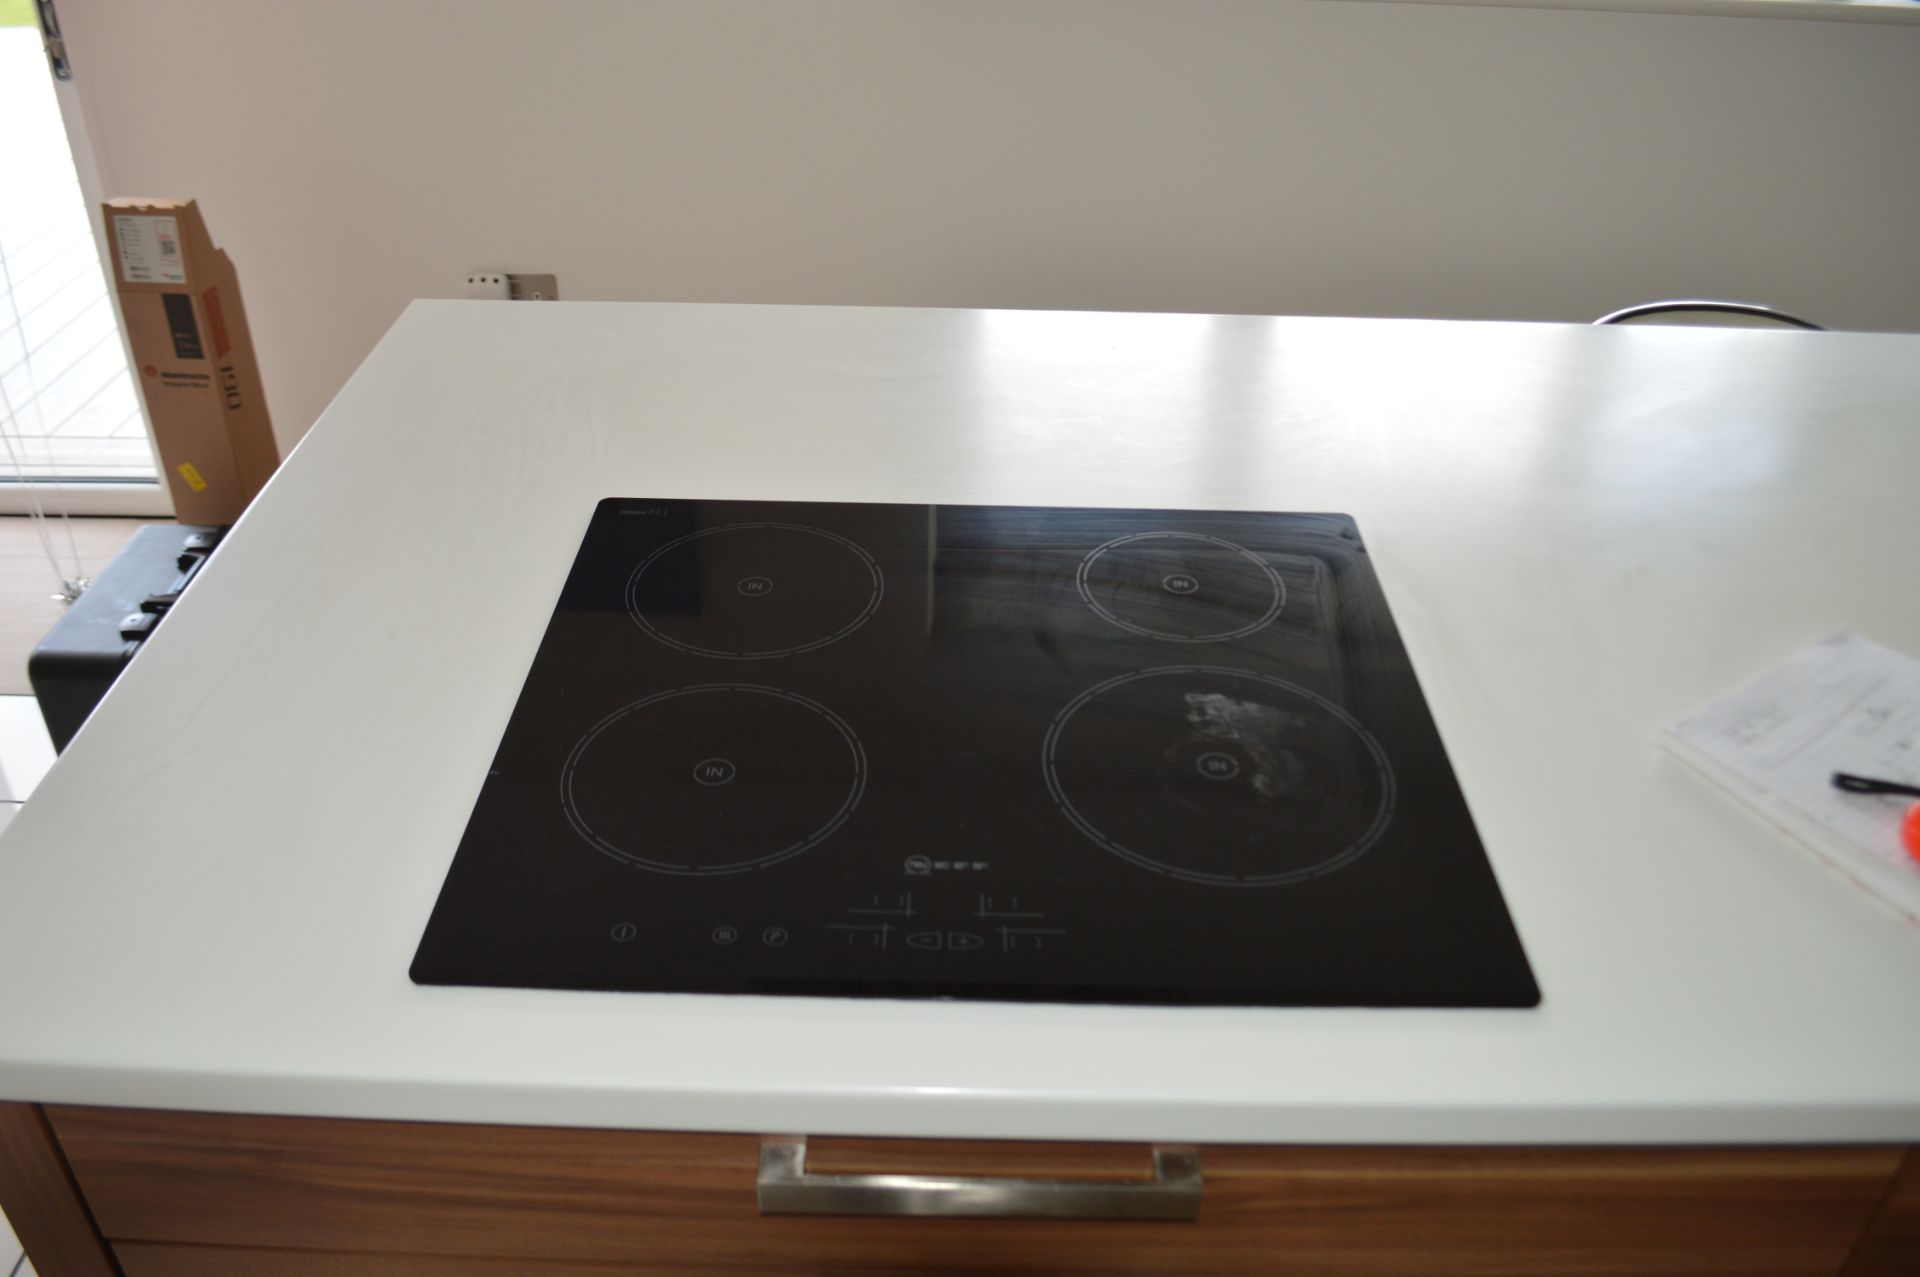 1 x Contemporary Bespoke Fitted Kitchen With Integrated Neff Branded Appliances, Quartz Worktops - Image 51 of 52